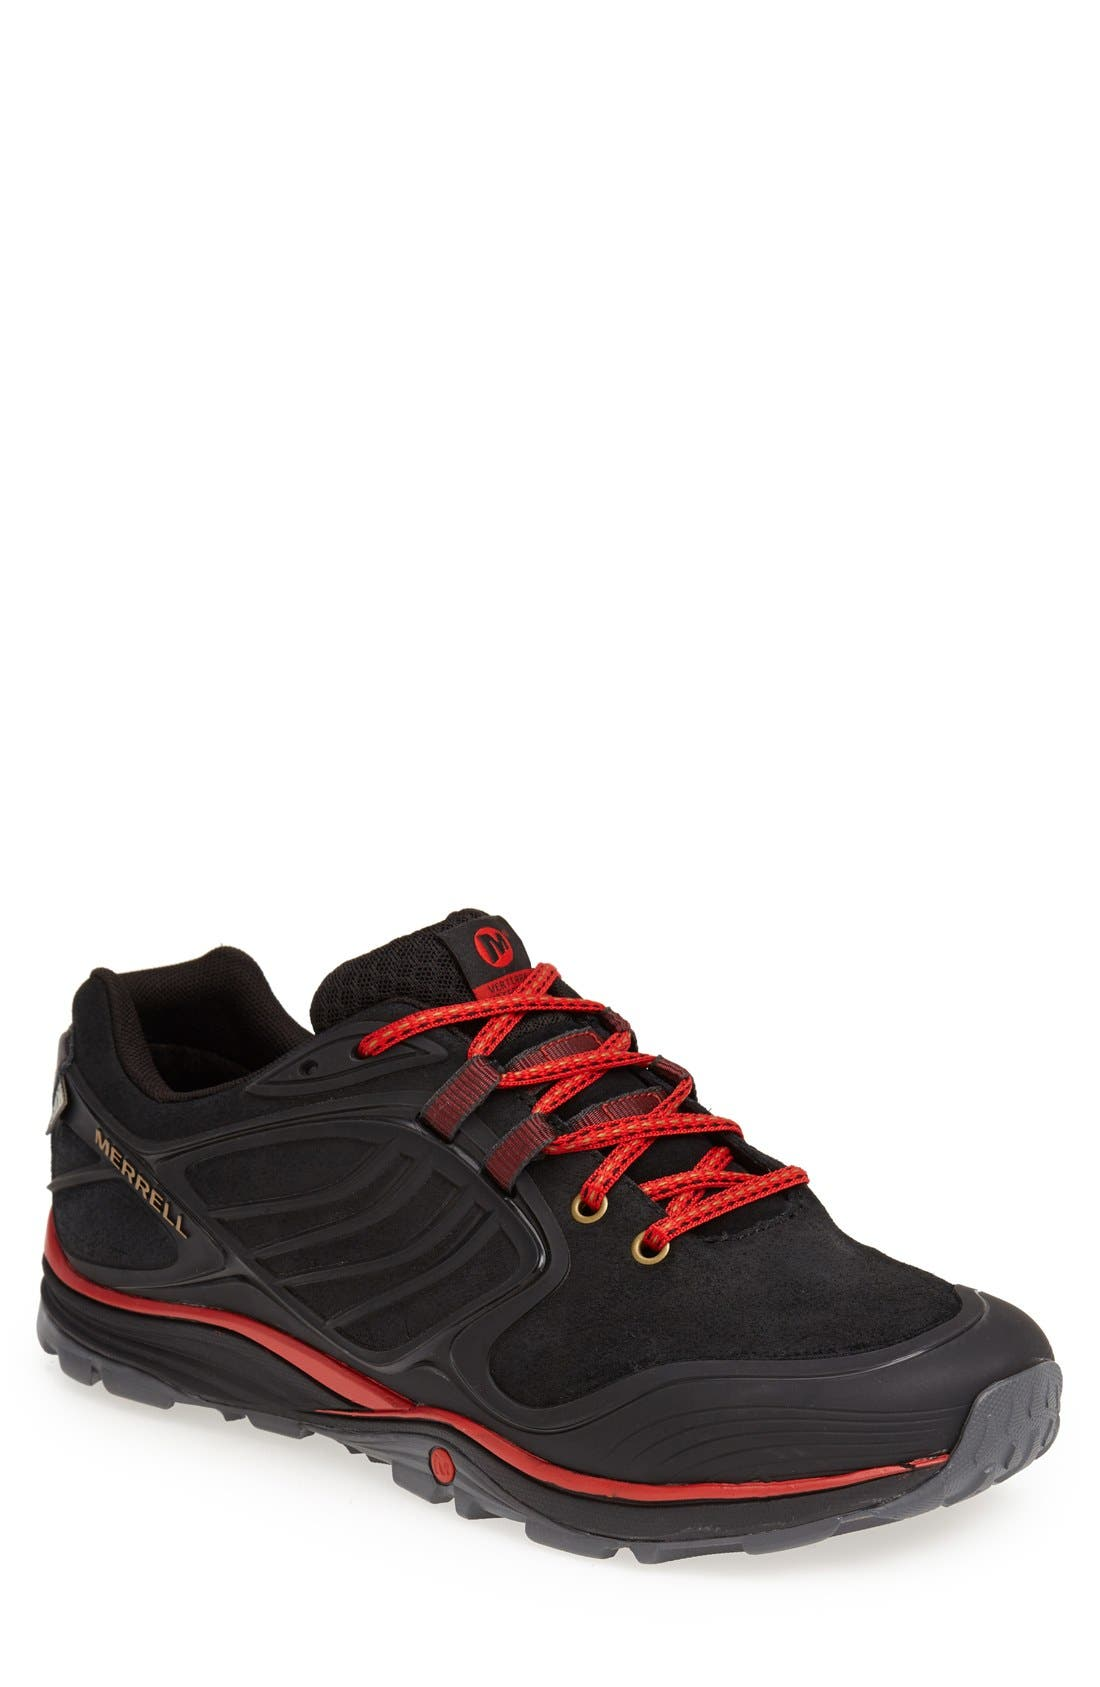 Main Image - Merrell 'Verterra' Waterproof Hiking Shoe (Men)